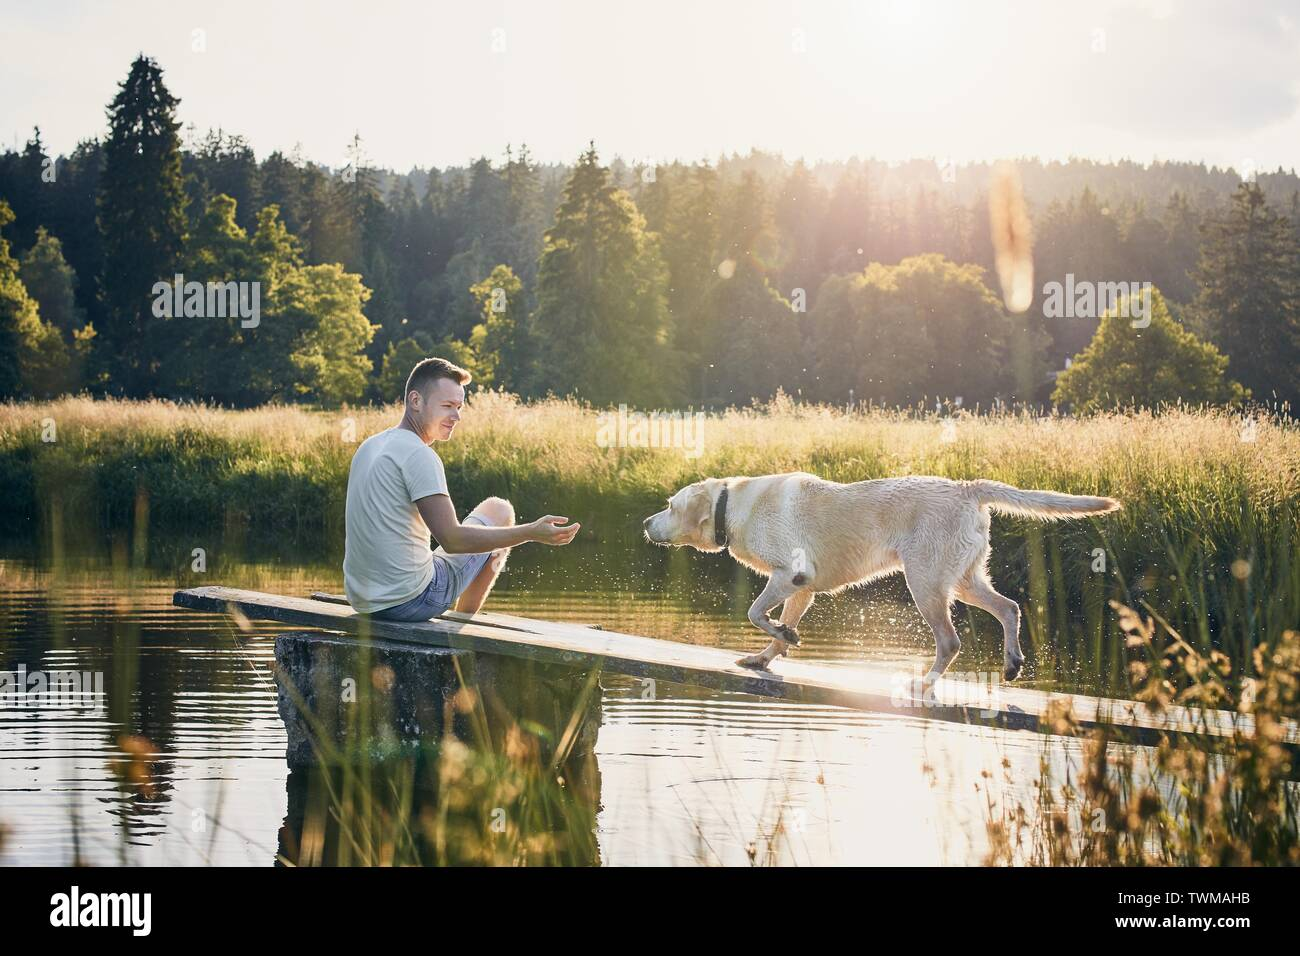 Idyllic summertime with dog. Young man sitting on pier and playing with his labrador retriever. - Stock Image